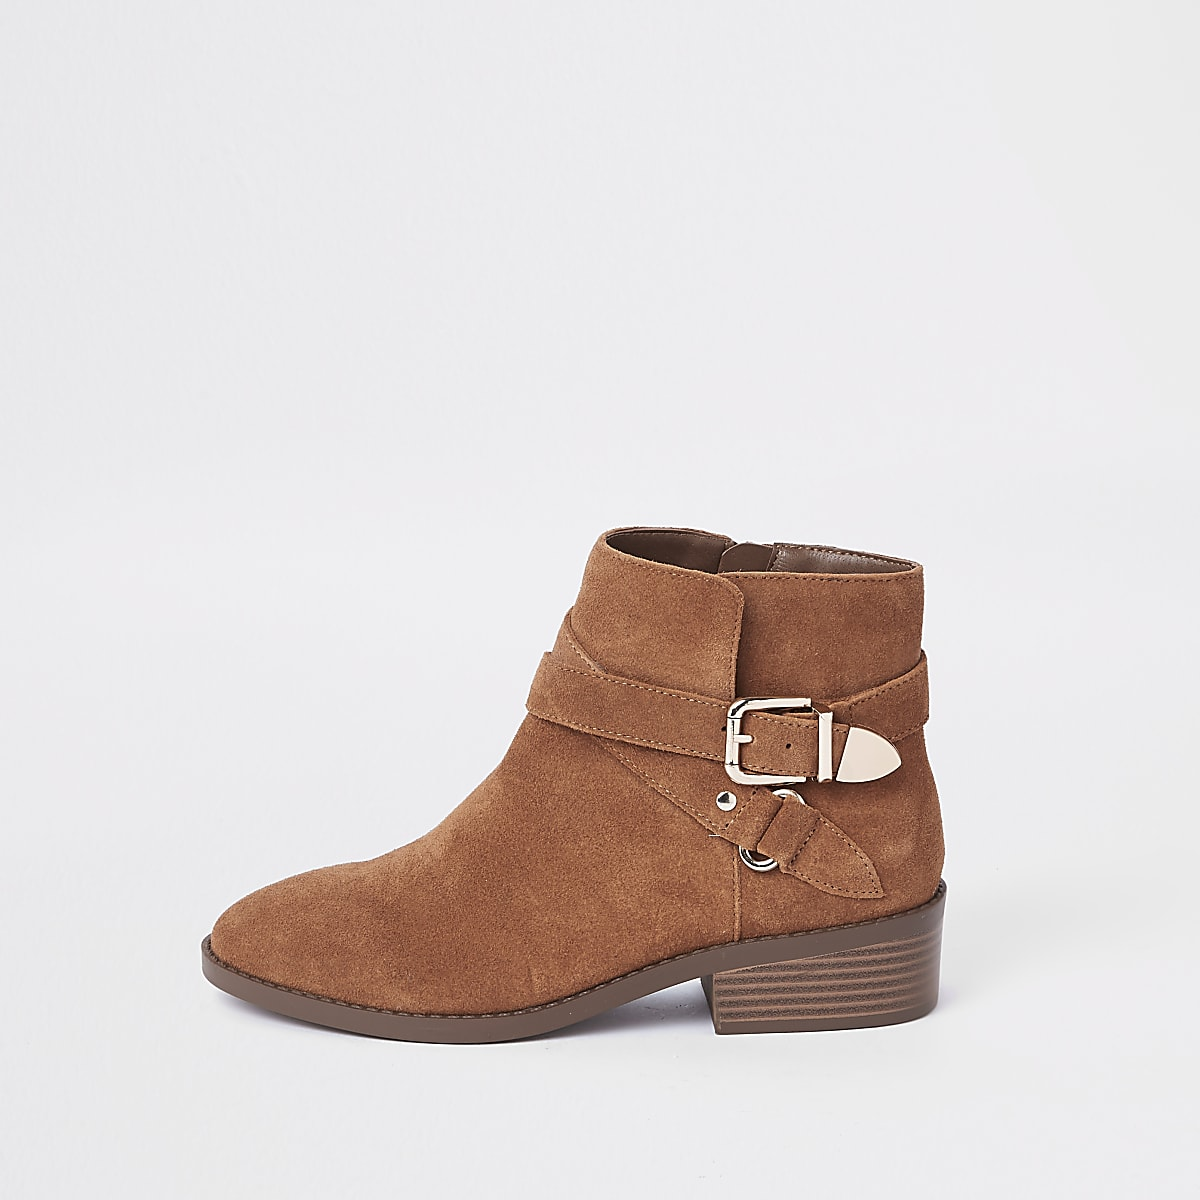 ce58819dce93e Light brown suede double buckle ankle boot - Boots - Shoes   Boots ...